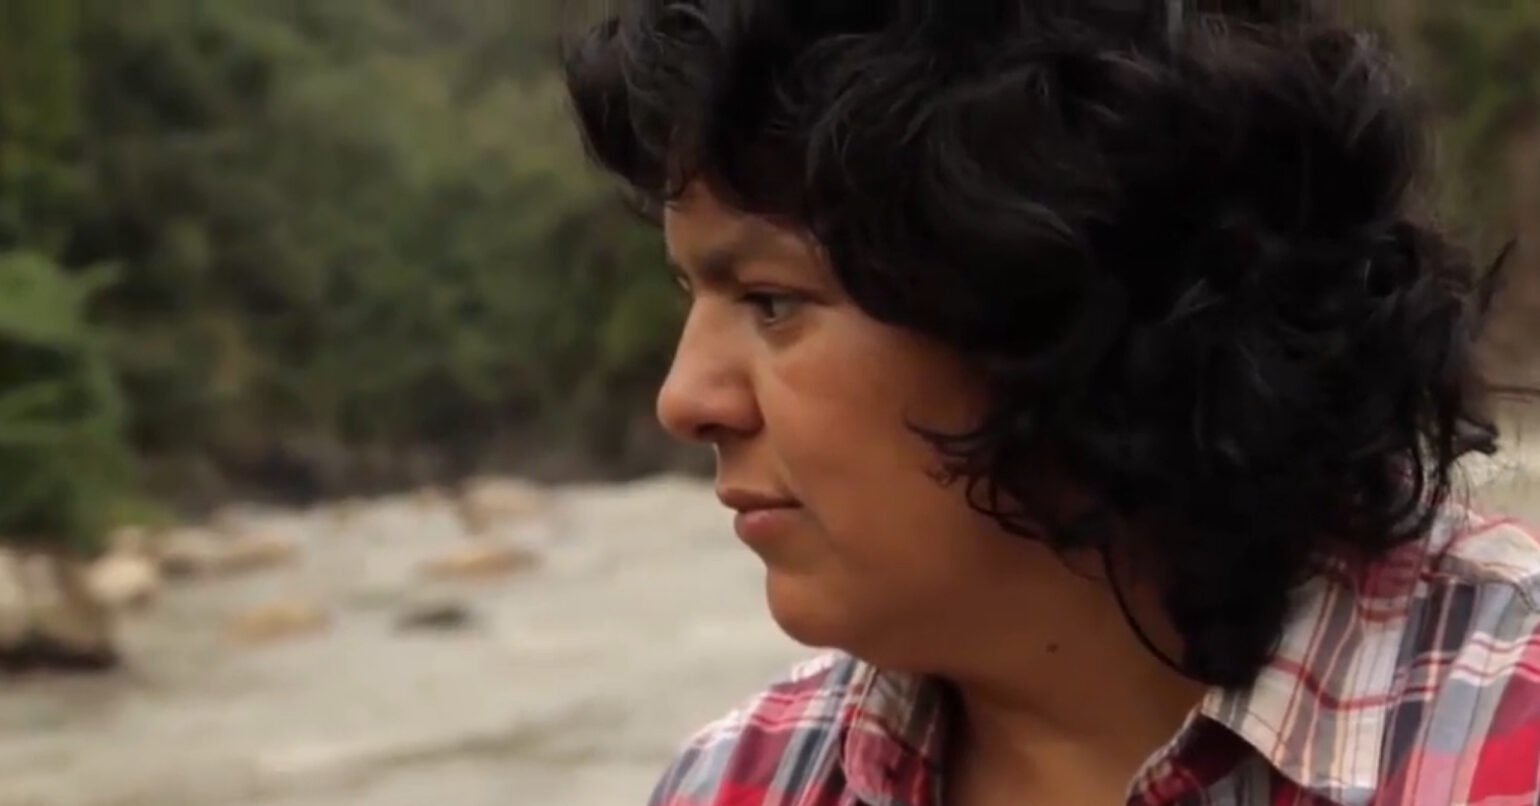 Image of Berta Caceres staring at a river